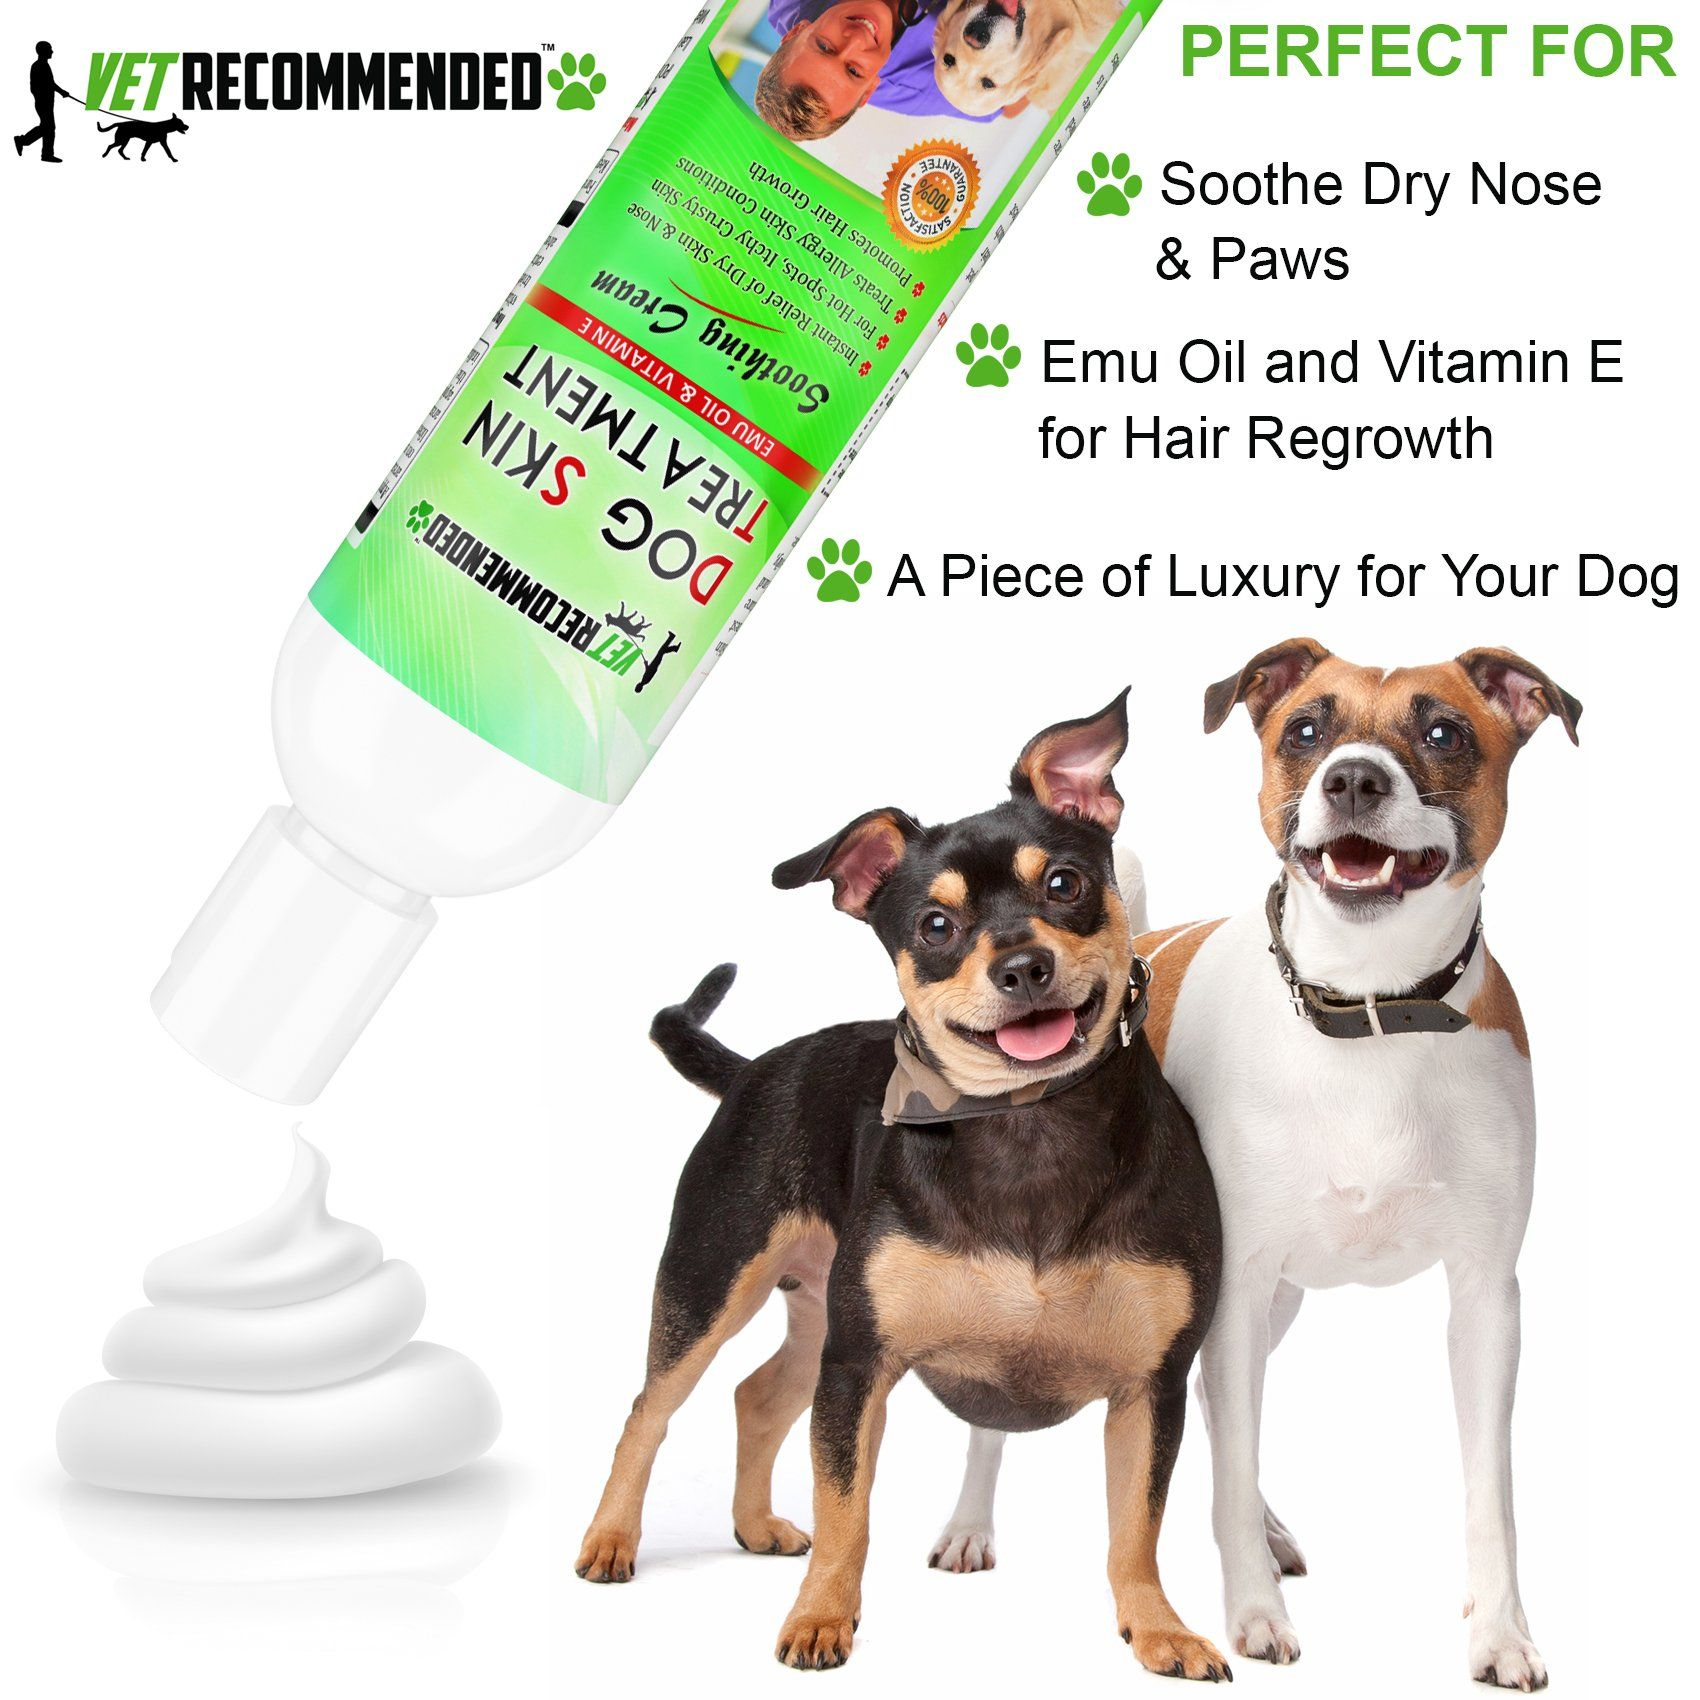 Vet Recommended Dog Dry Skin Treatment Helps Dog Hair Loss